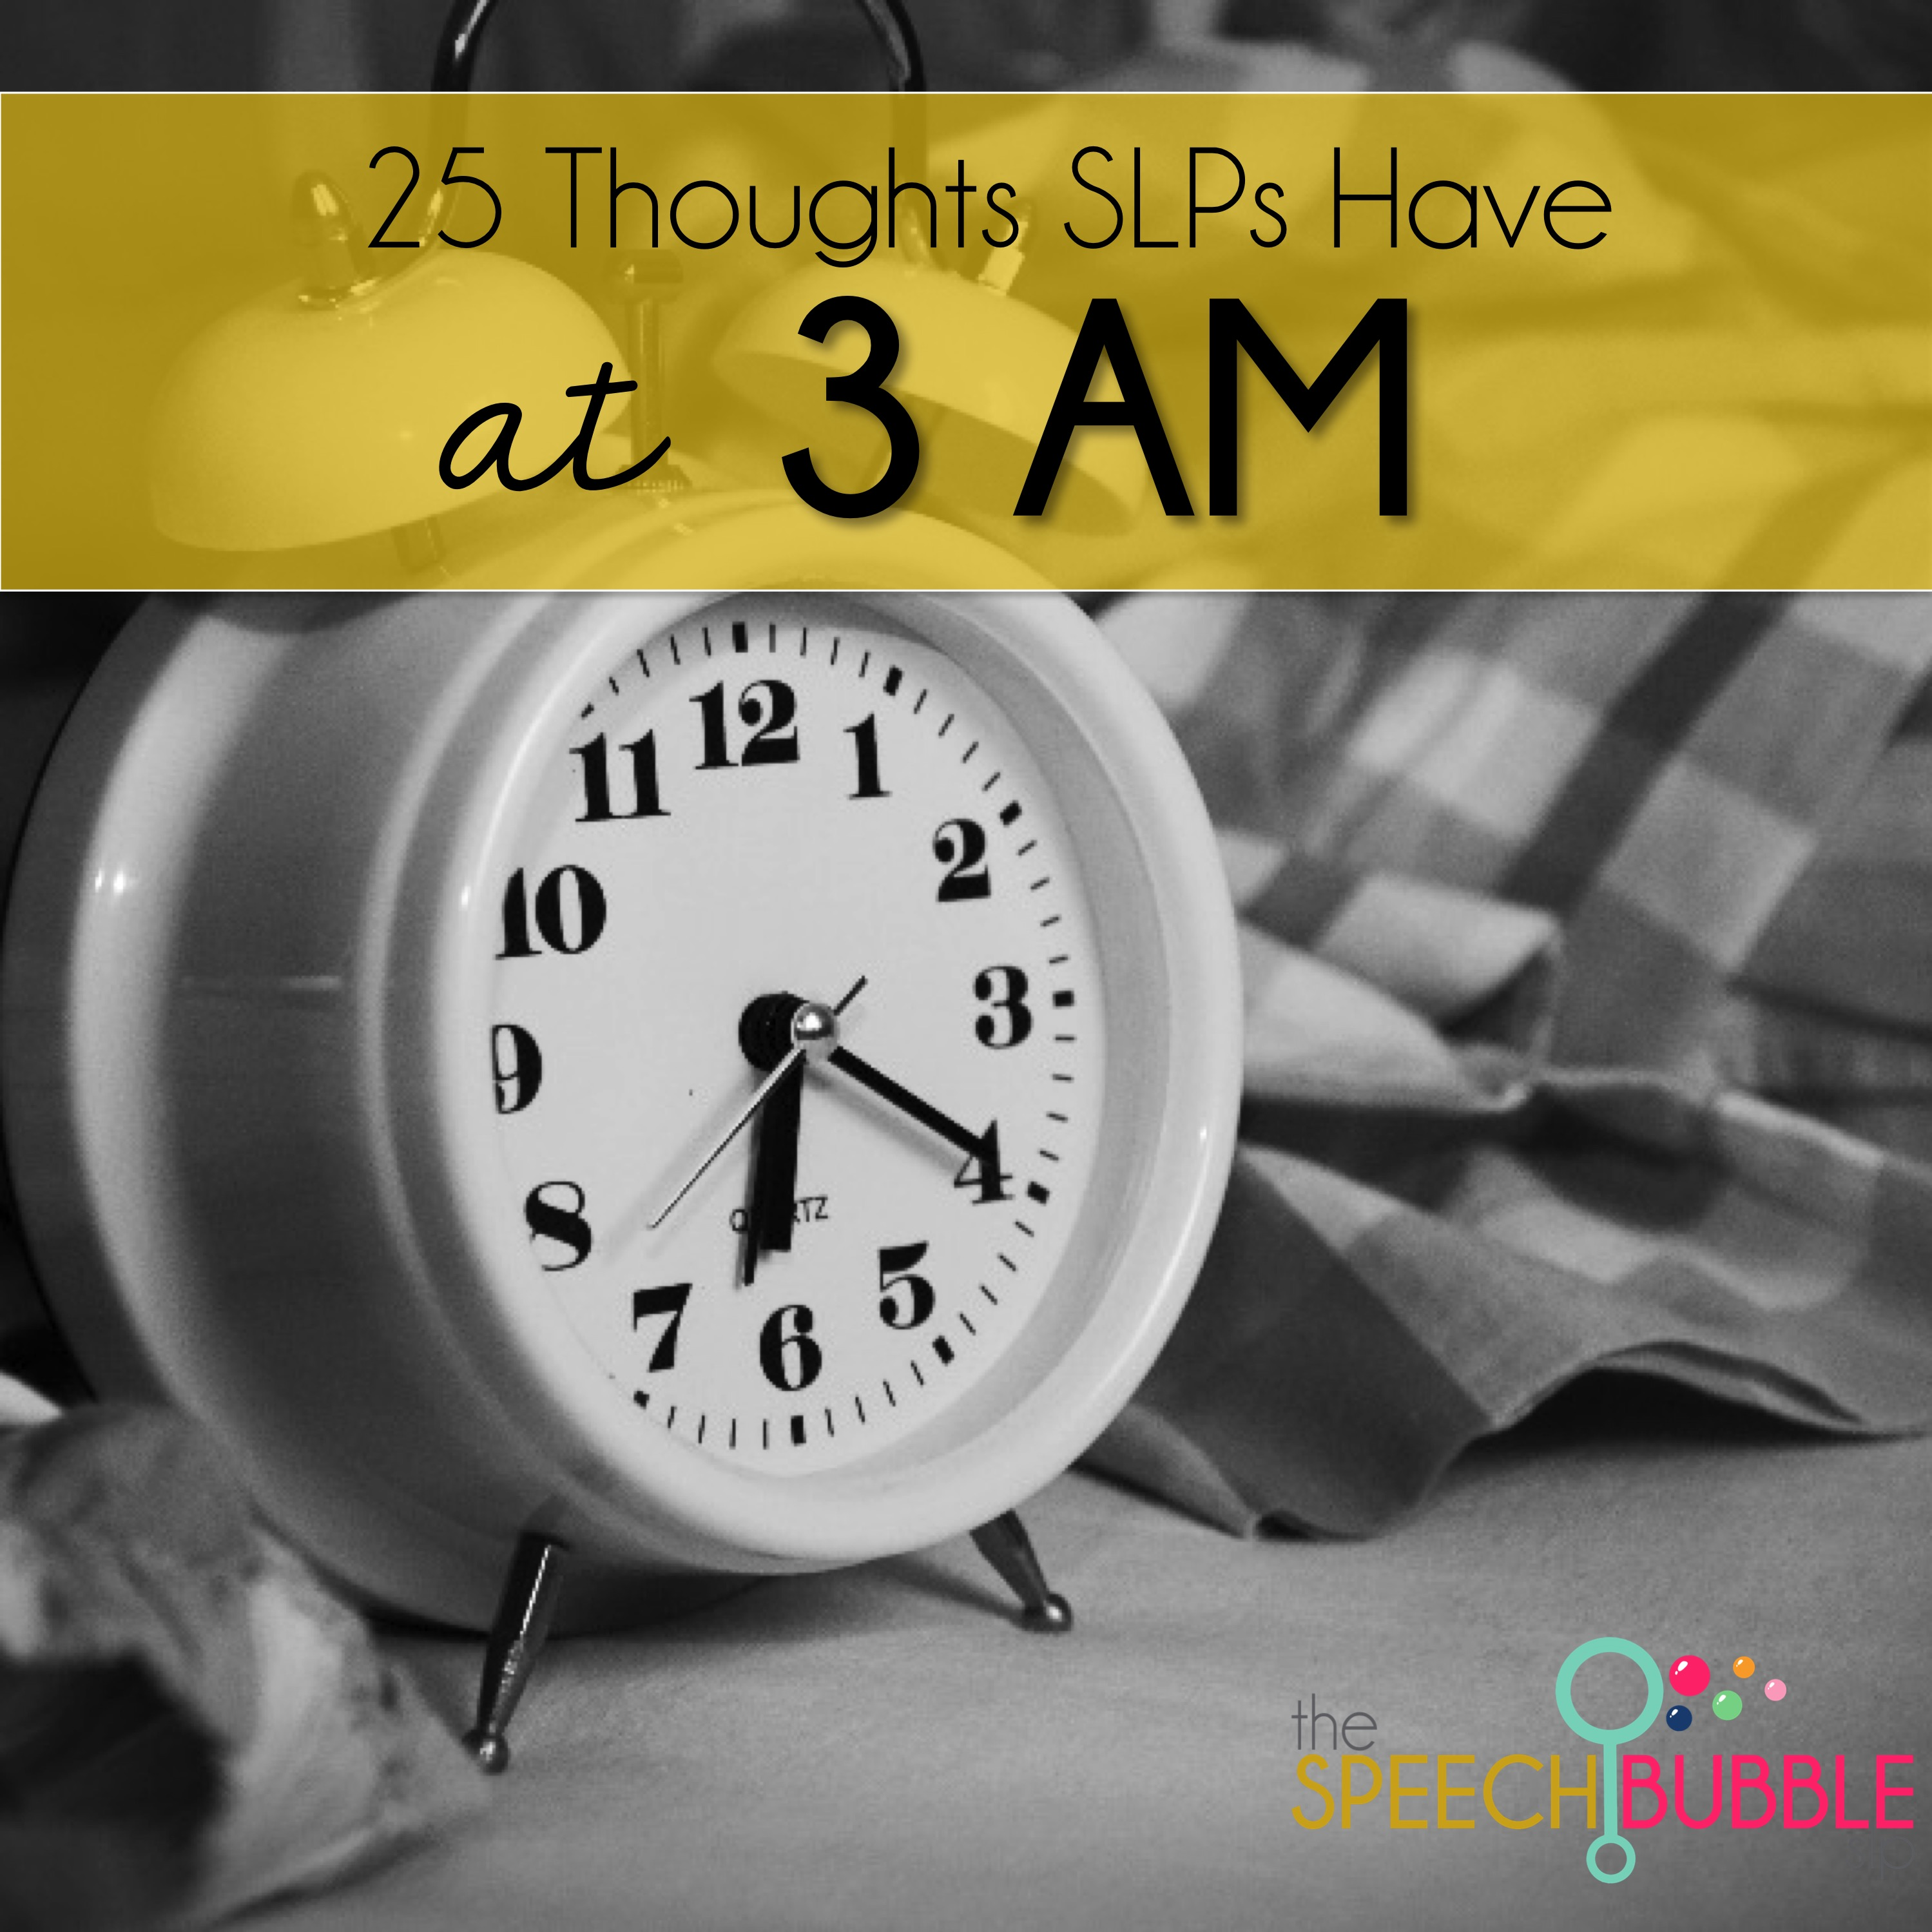 25 Thoughts SLPs Have at 3AM